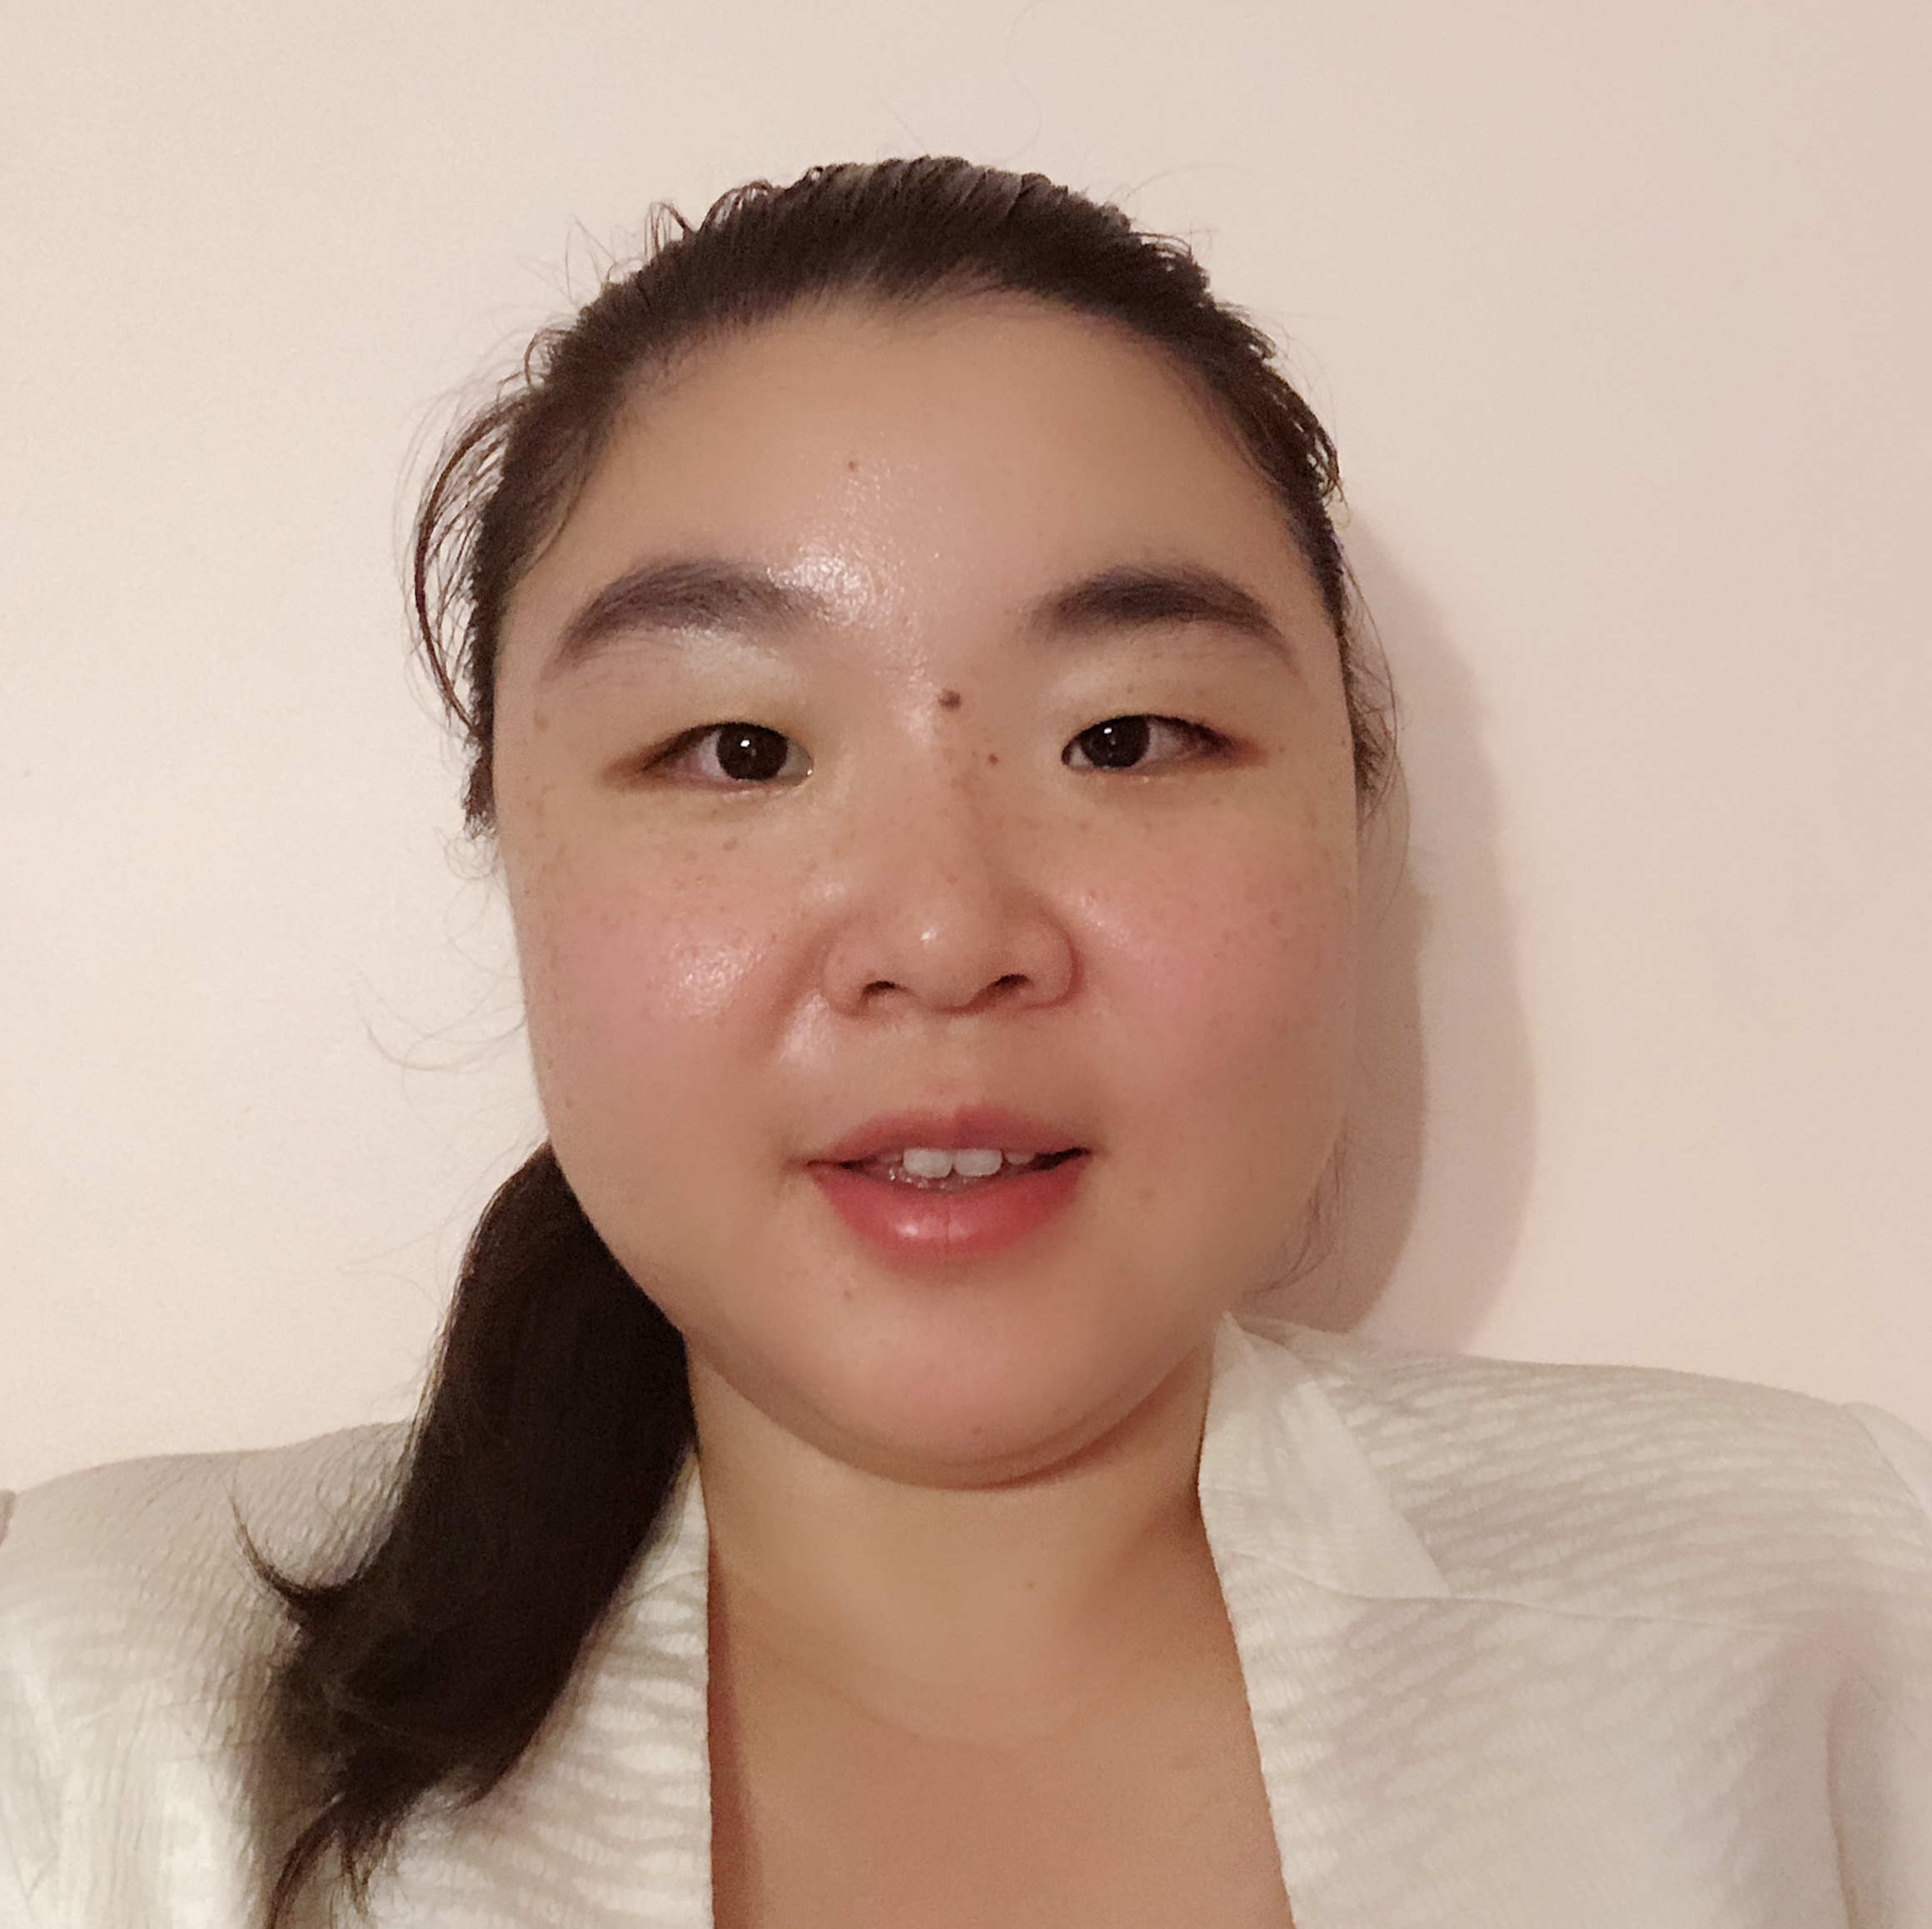 Xiaojue's profile picture